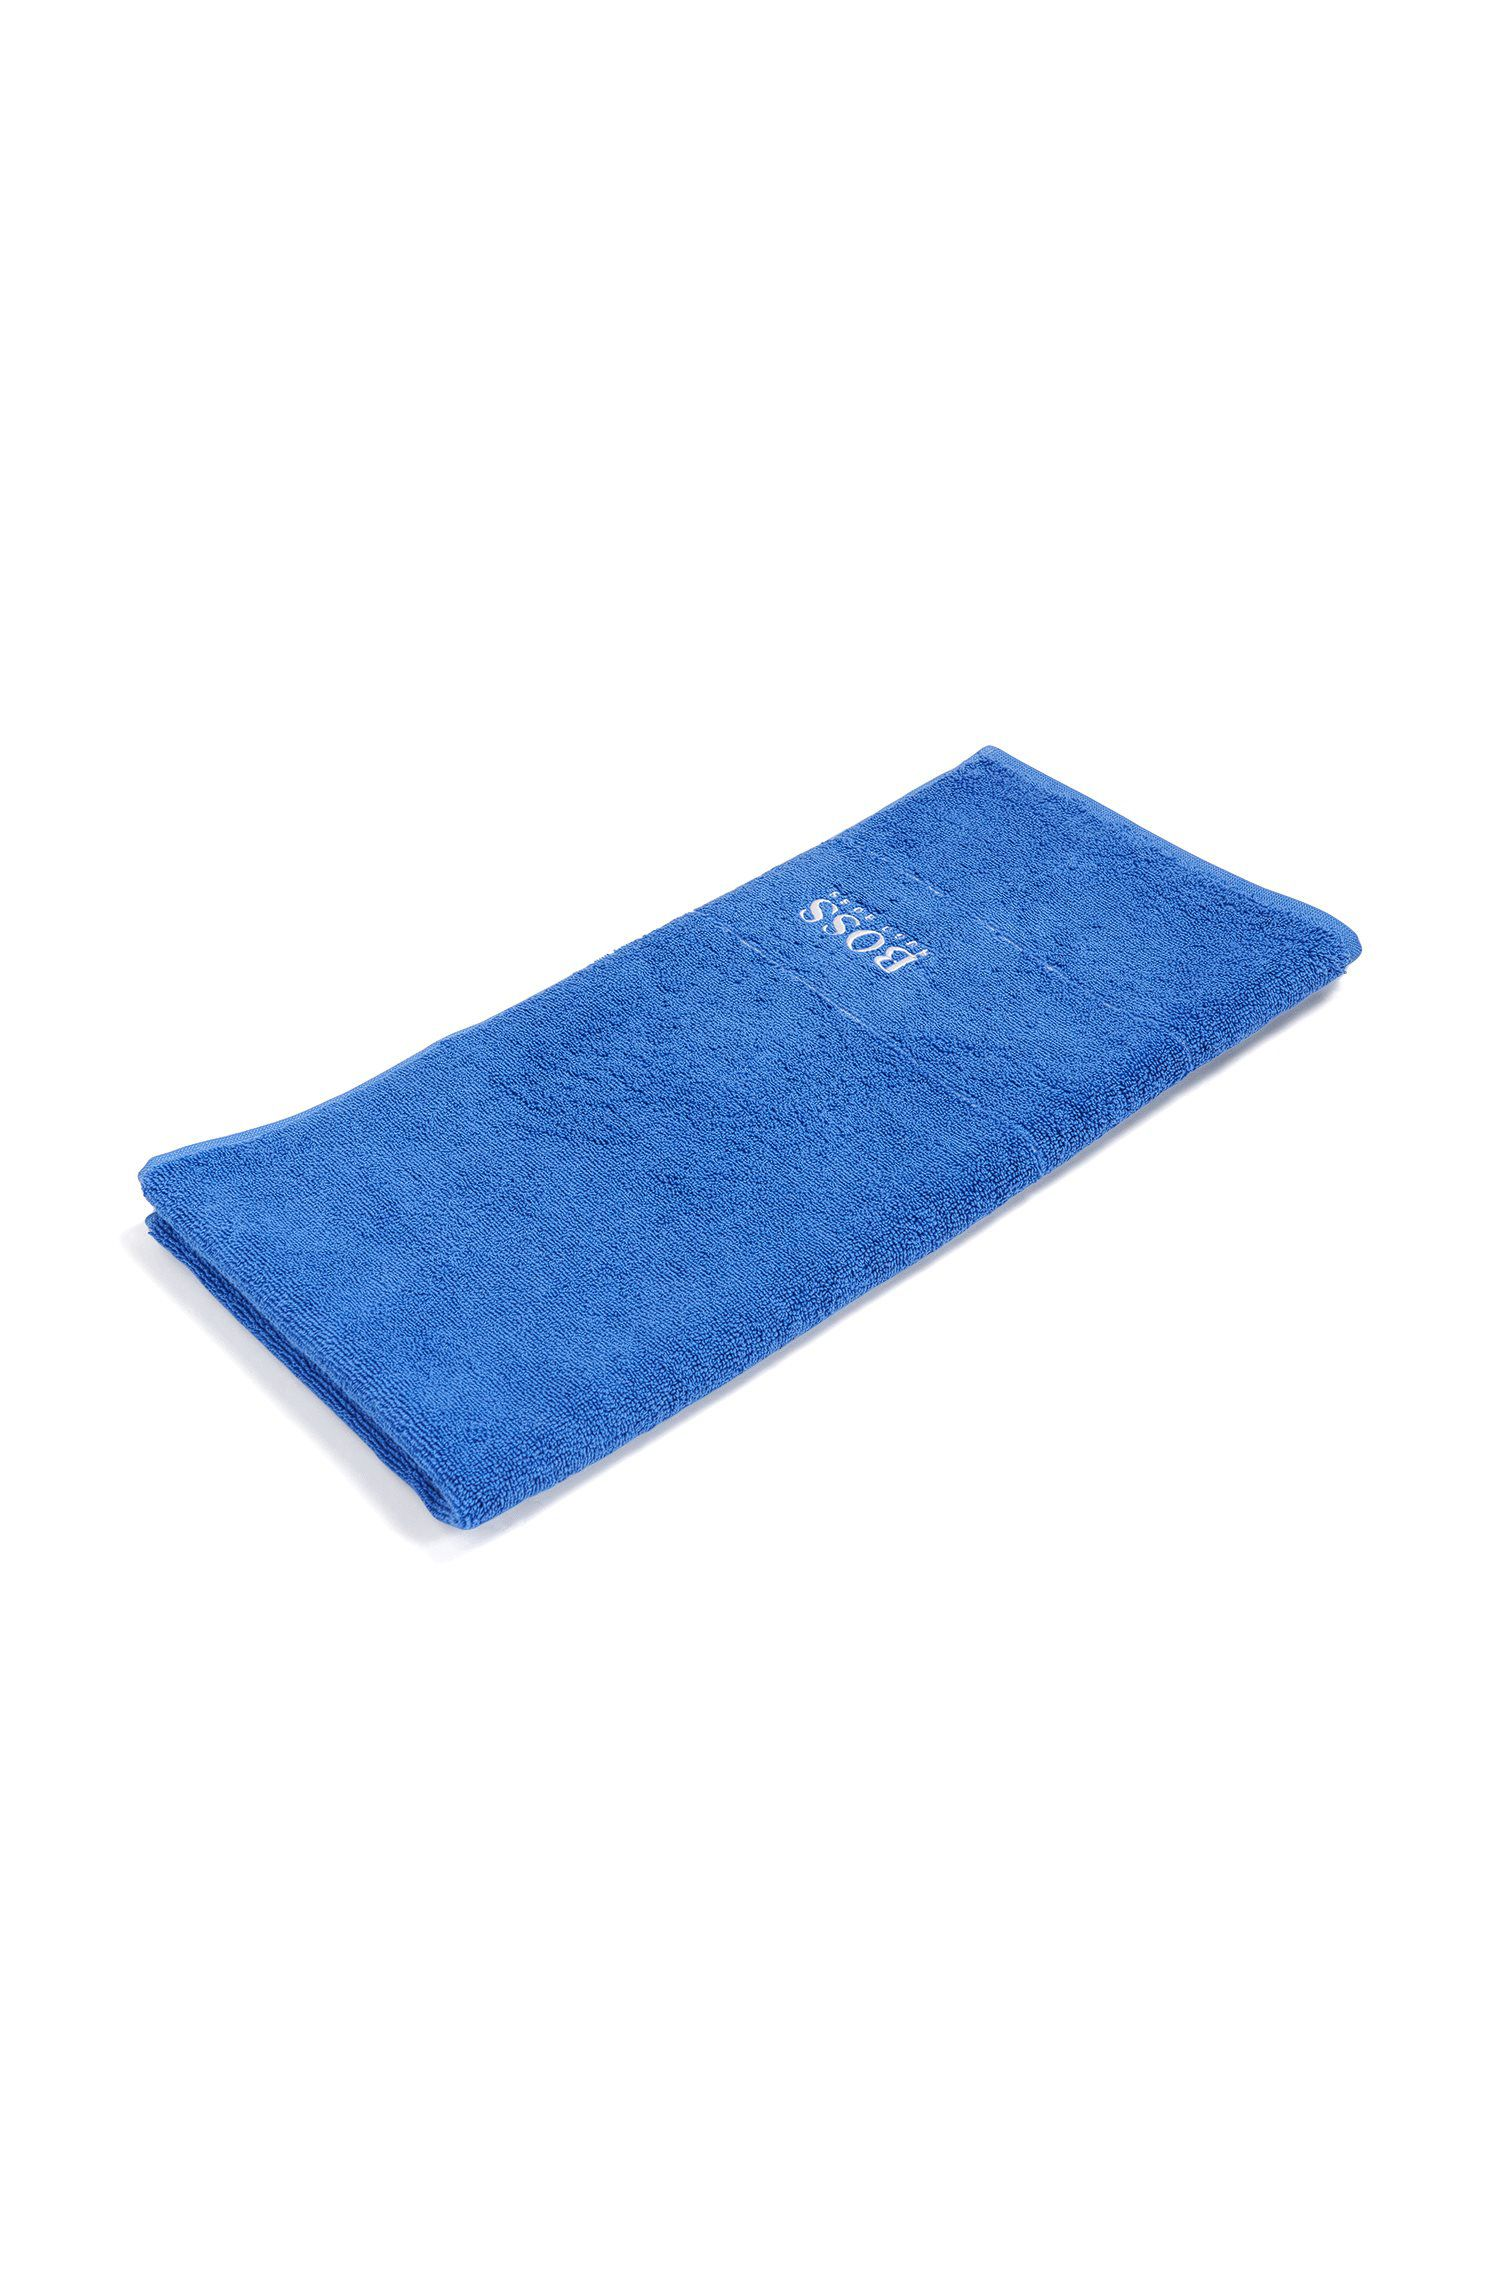 Finest Egyptian cotton hand towel with logo border